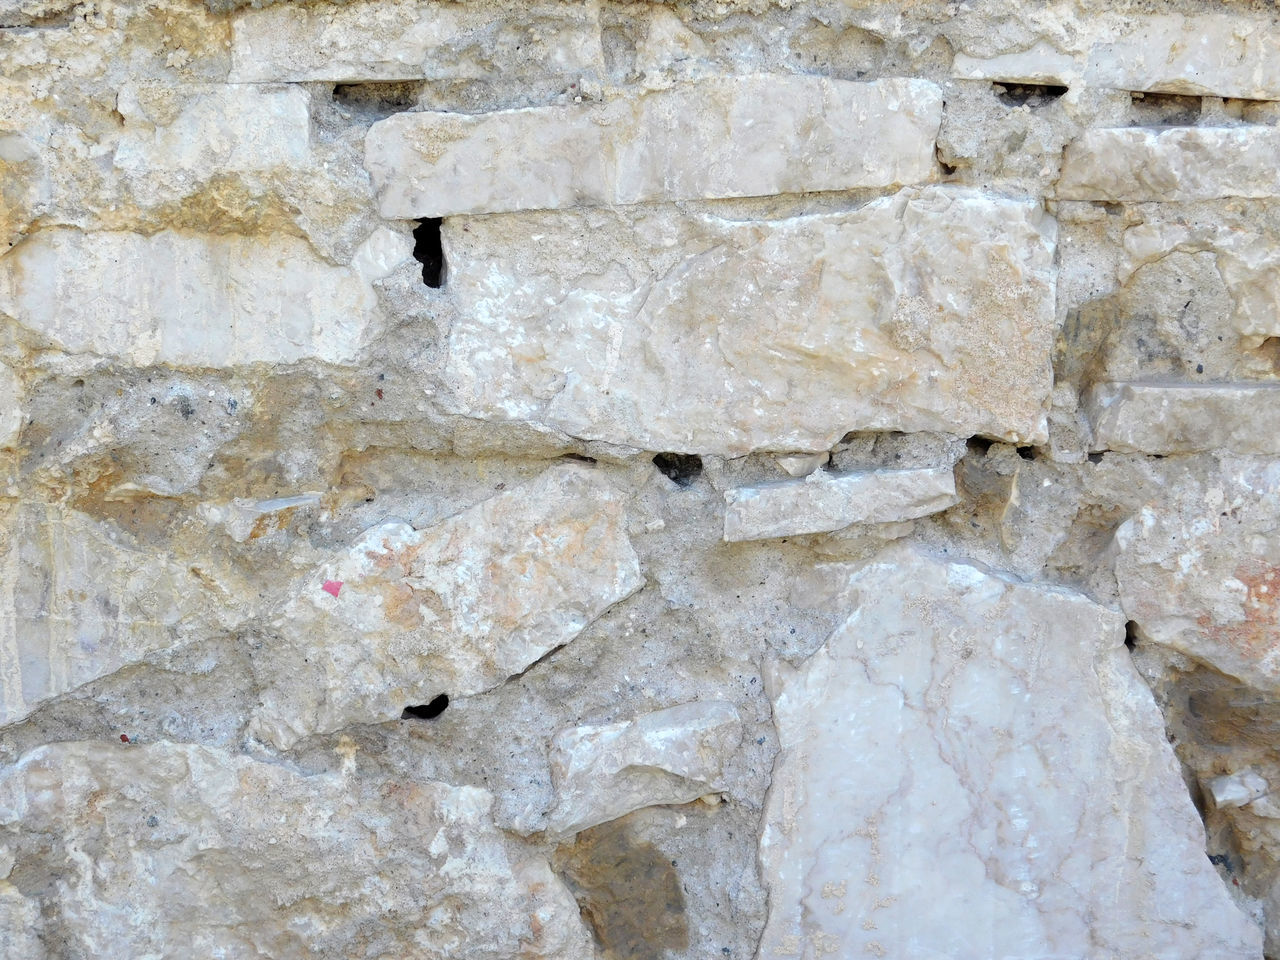 Stone texture Architecture Backgrounds Building Exterior Built Structure Close-up Day Marble Nature No People Outdoors Rock - Object Stone Material Textured